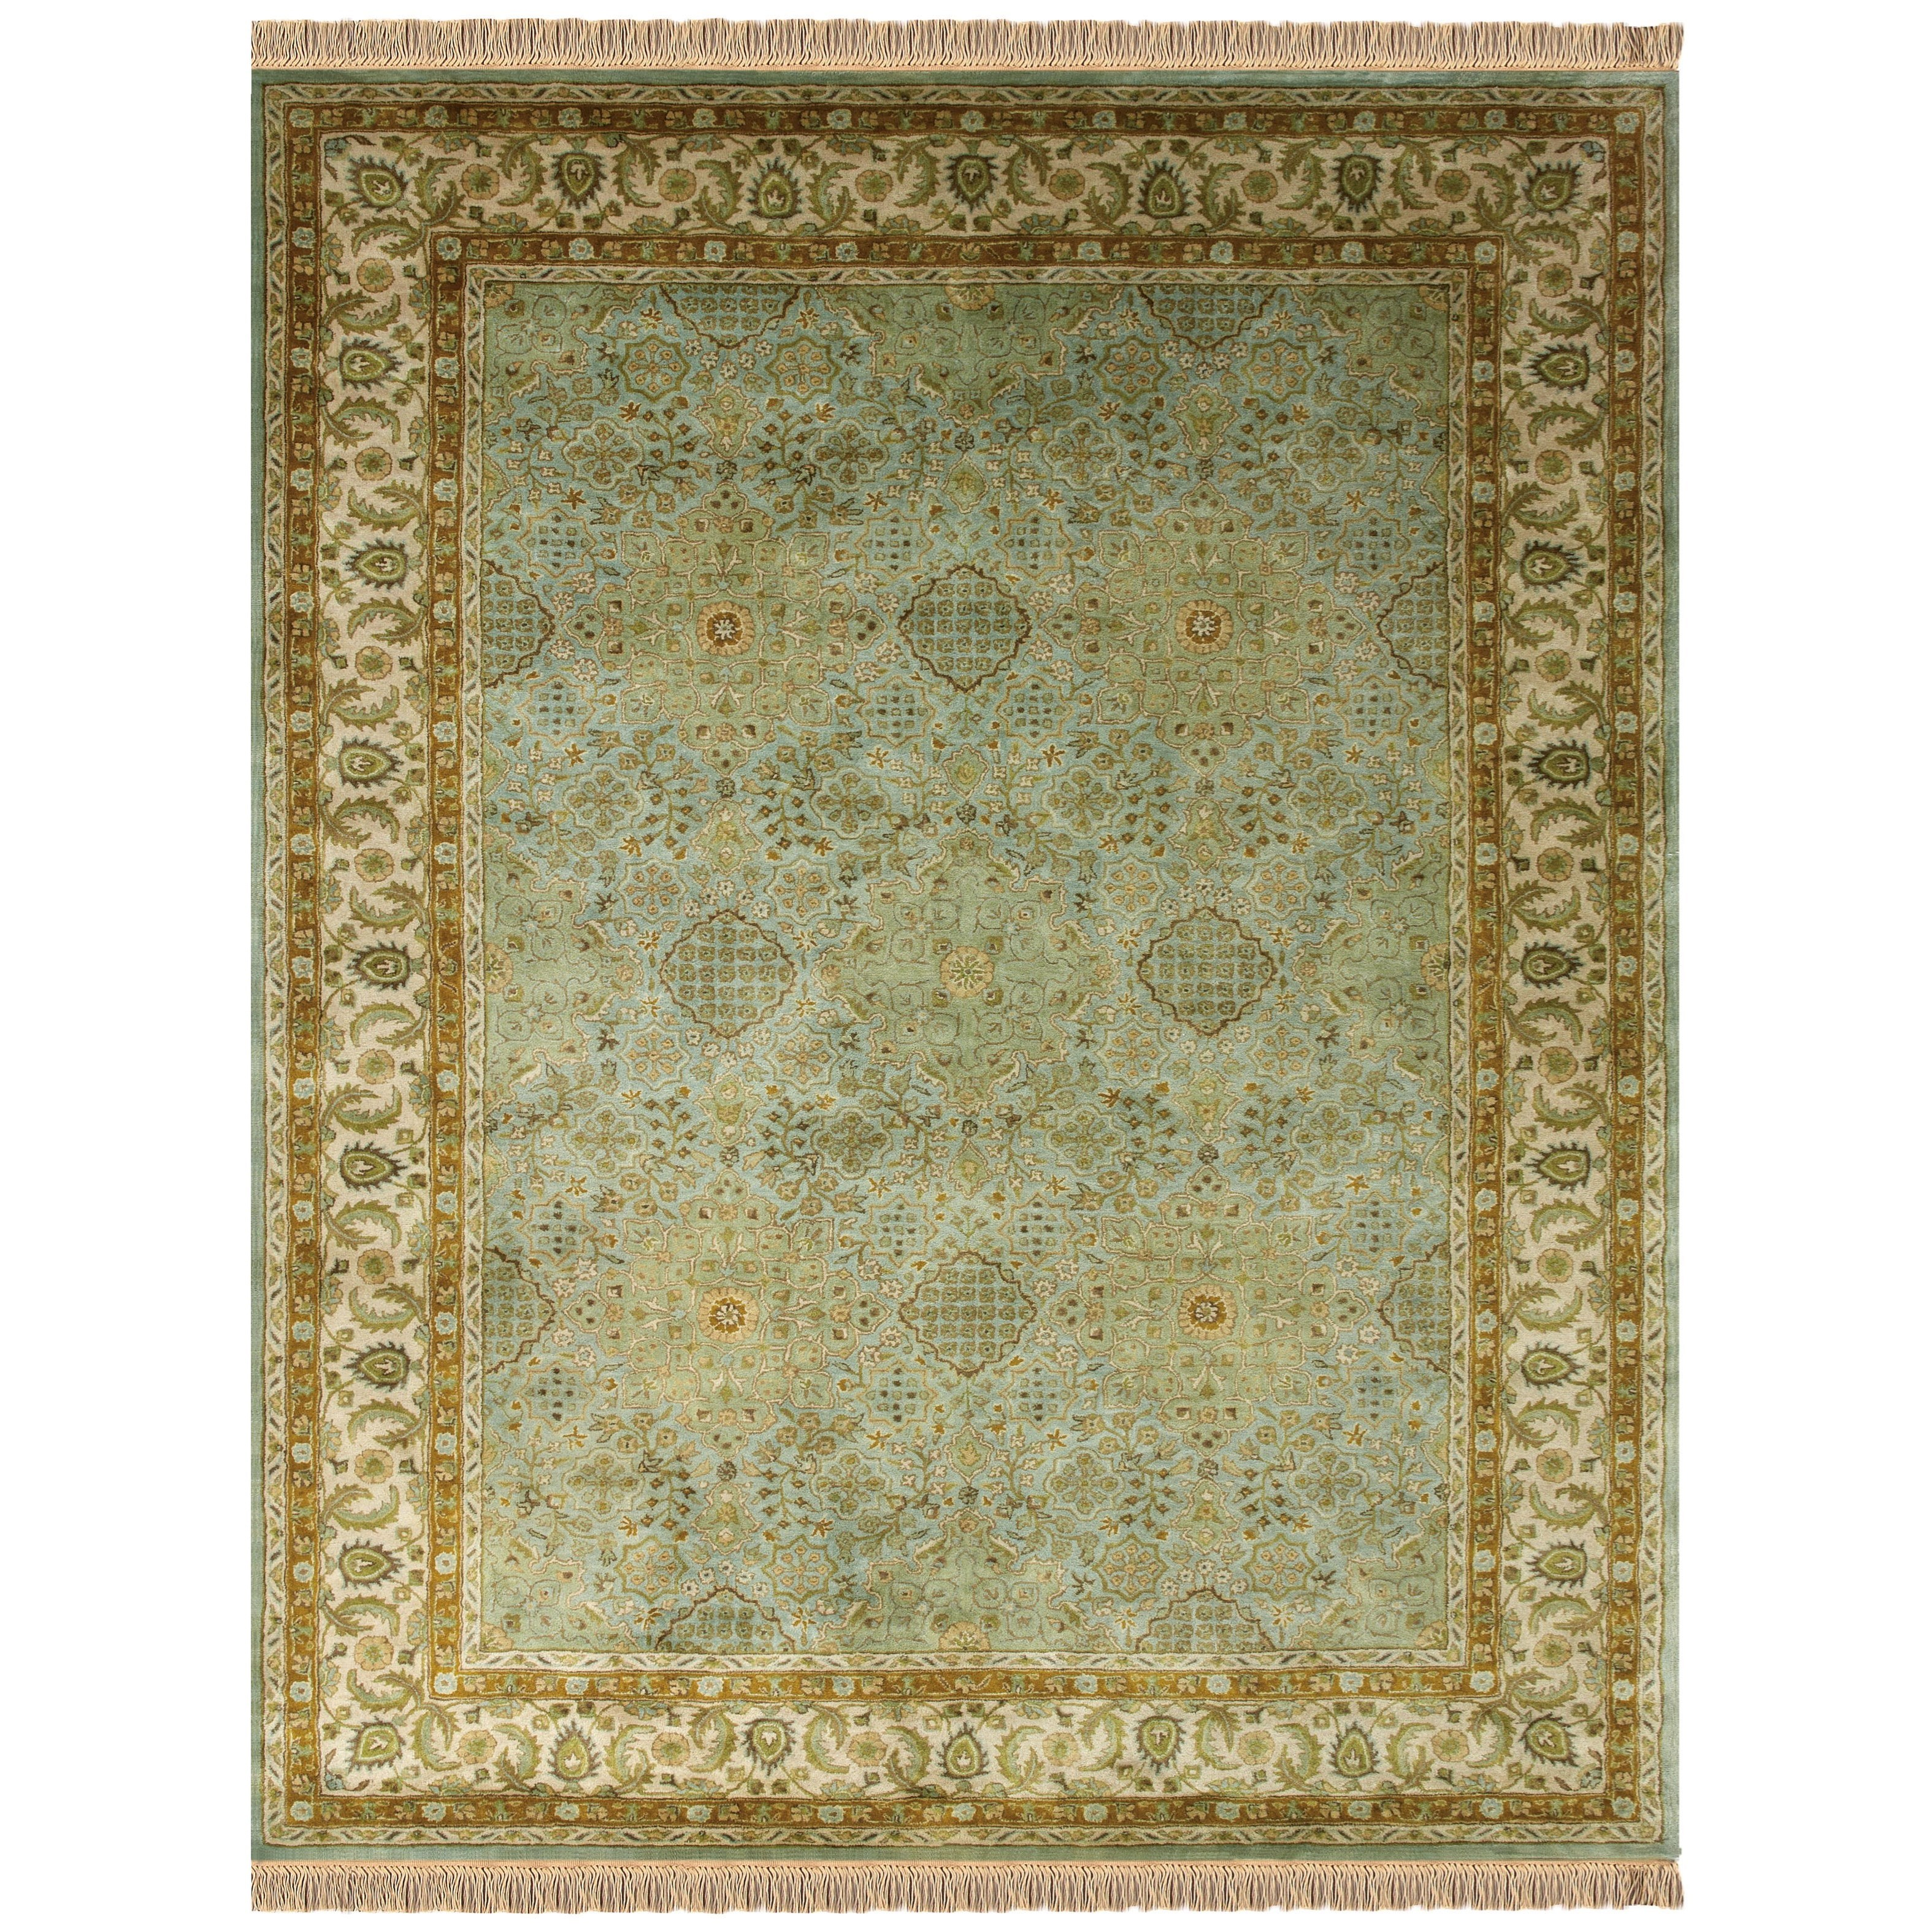 Amore Ocean/Beige 2' x 3' Area Rug by Feizy Rugs at Sprintz Furniture